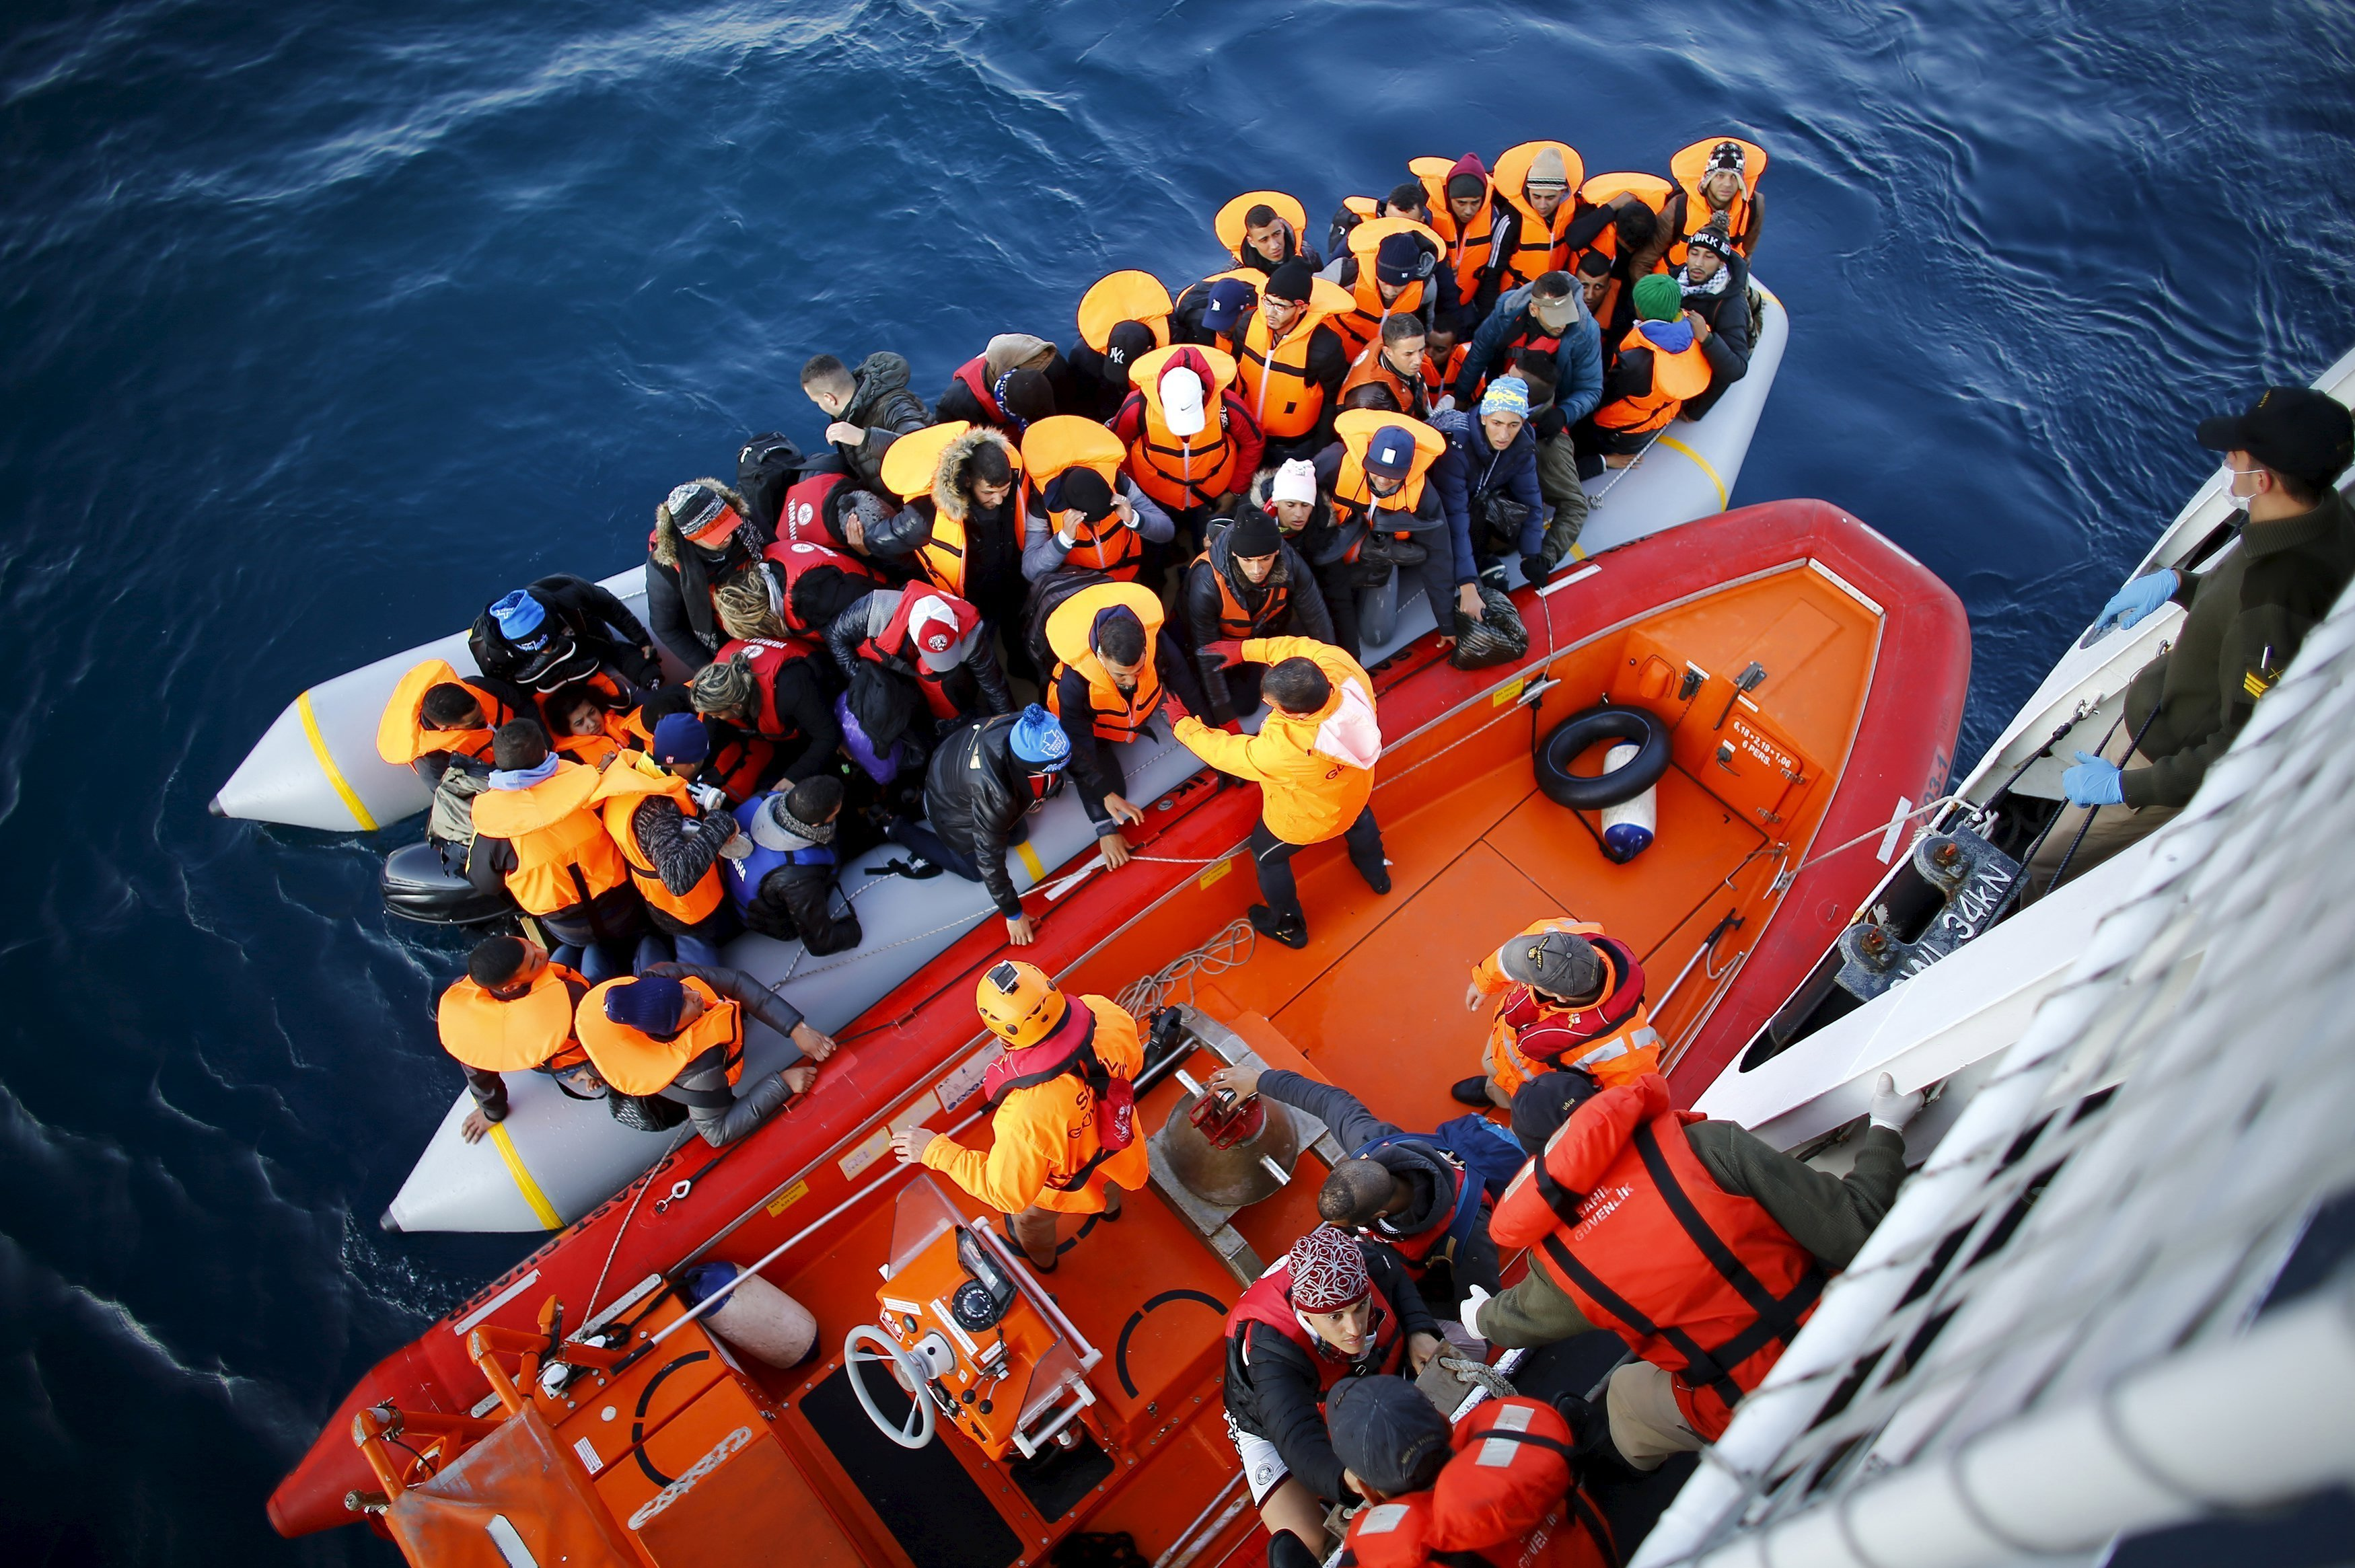 Refugees and migrants board the Turkish Coast Guard Search and Rescue ship Umut-703, off the shores of Canakkale, Turkey, after a failed attempt at crossing to the Greek island of Lesbos, November 9, 2015